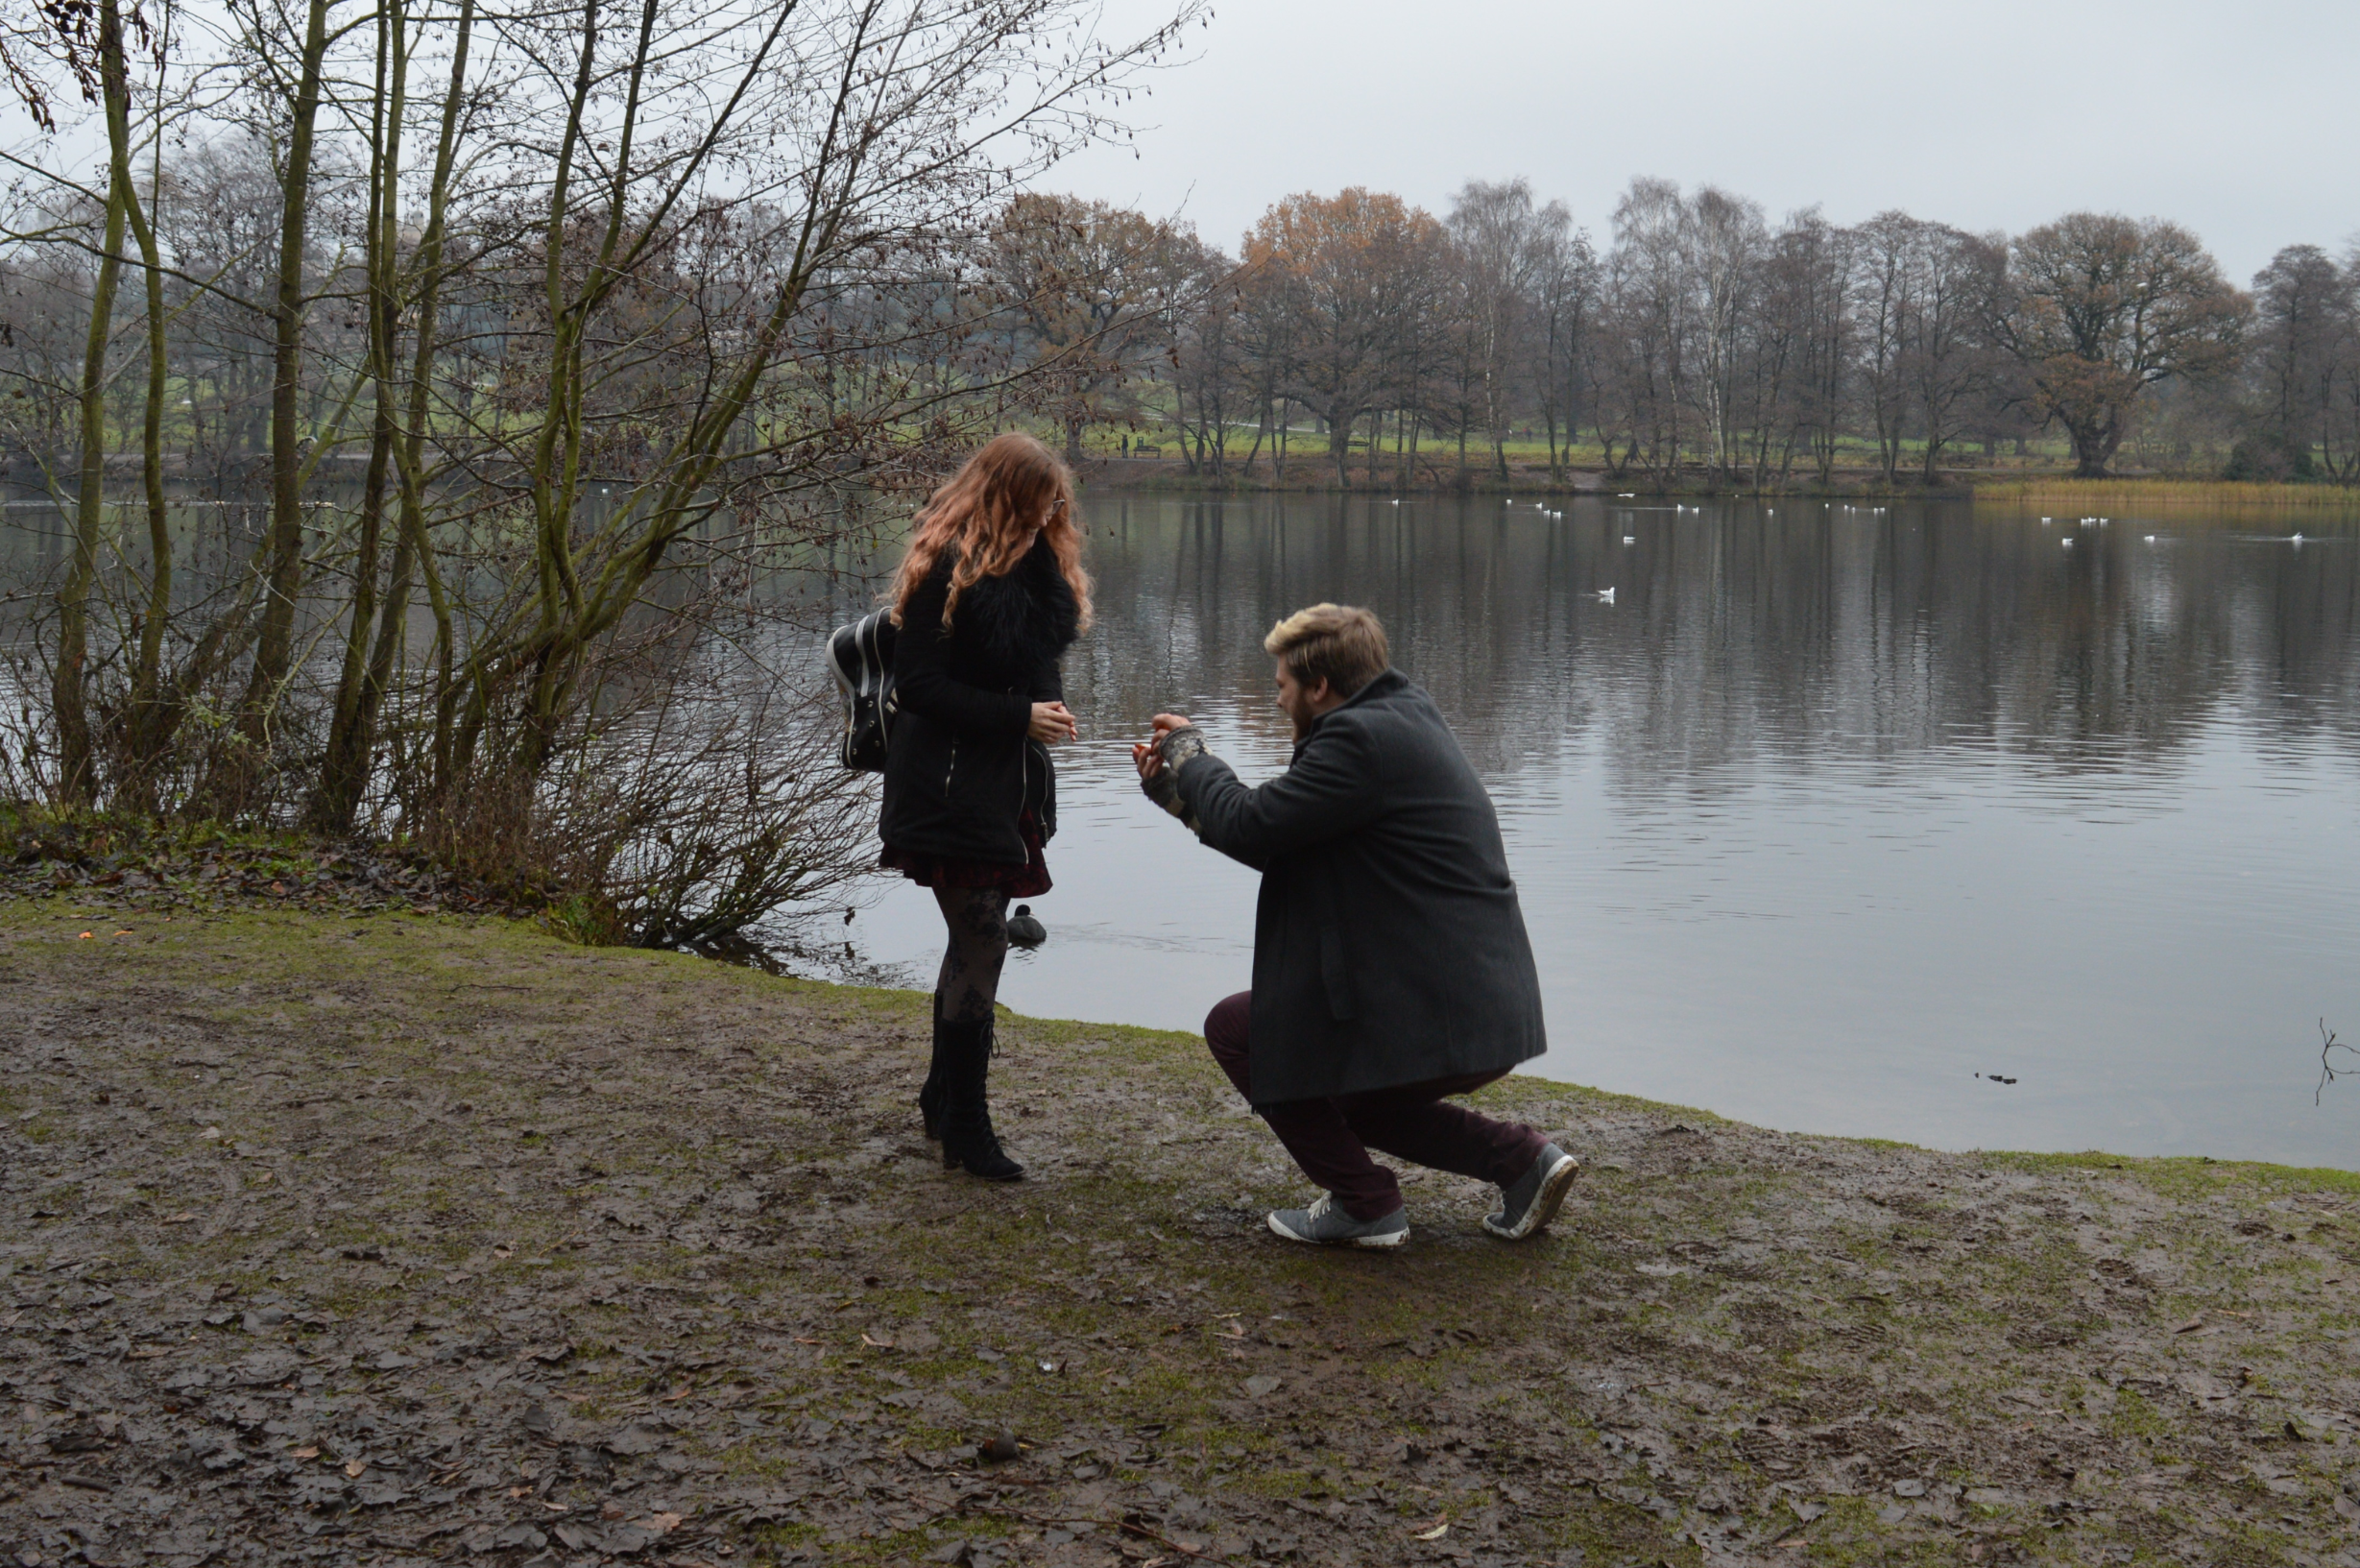 The proposal moment